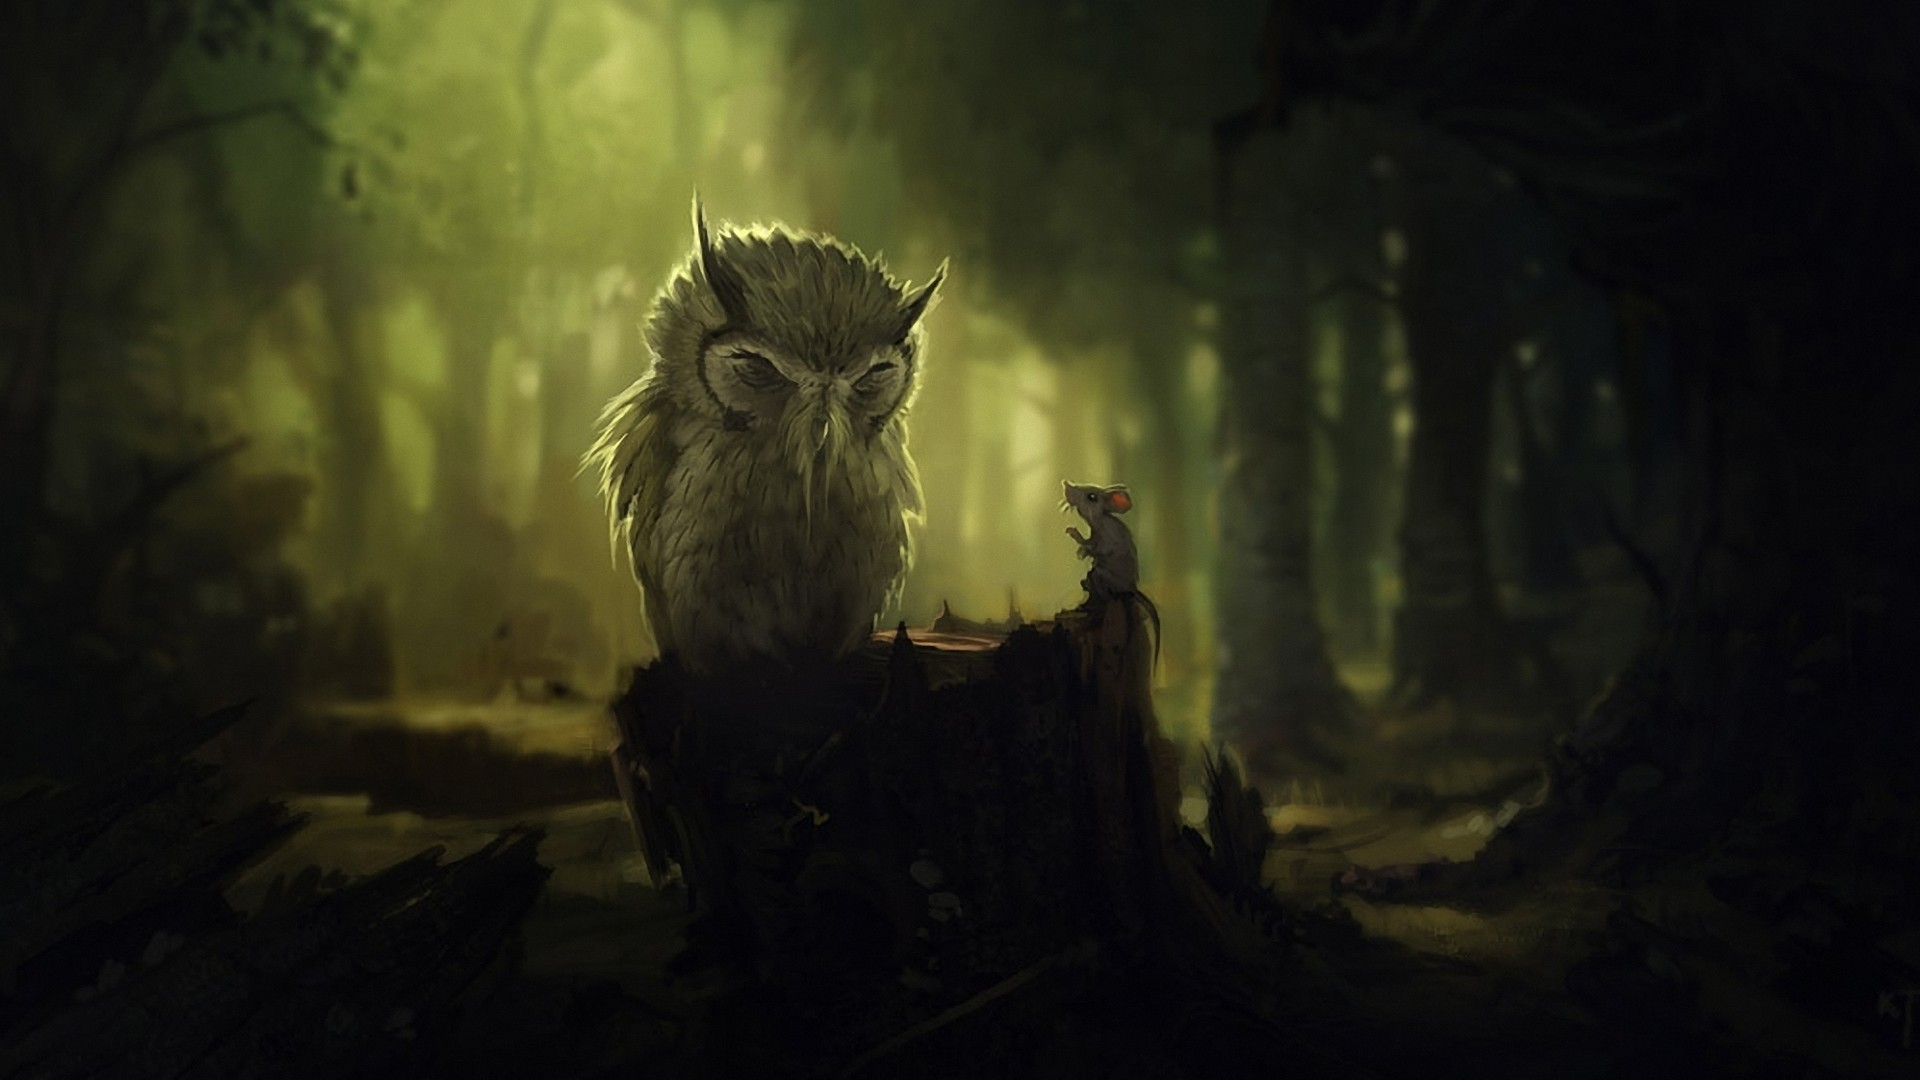 Animal - Owl Wallpaper